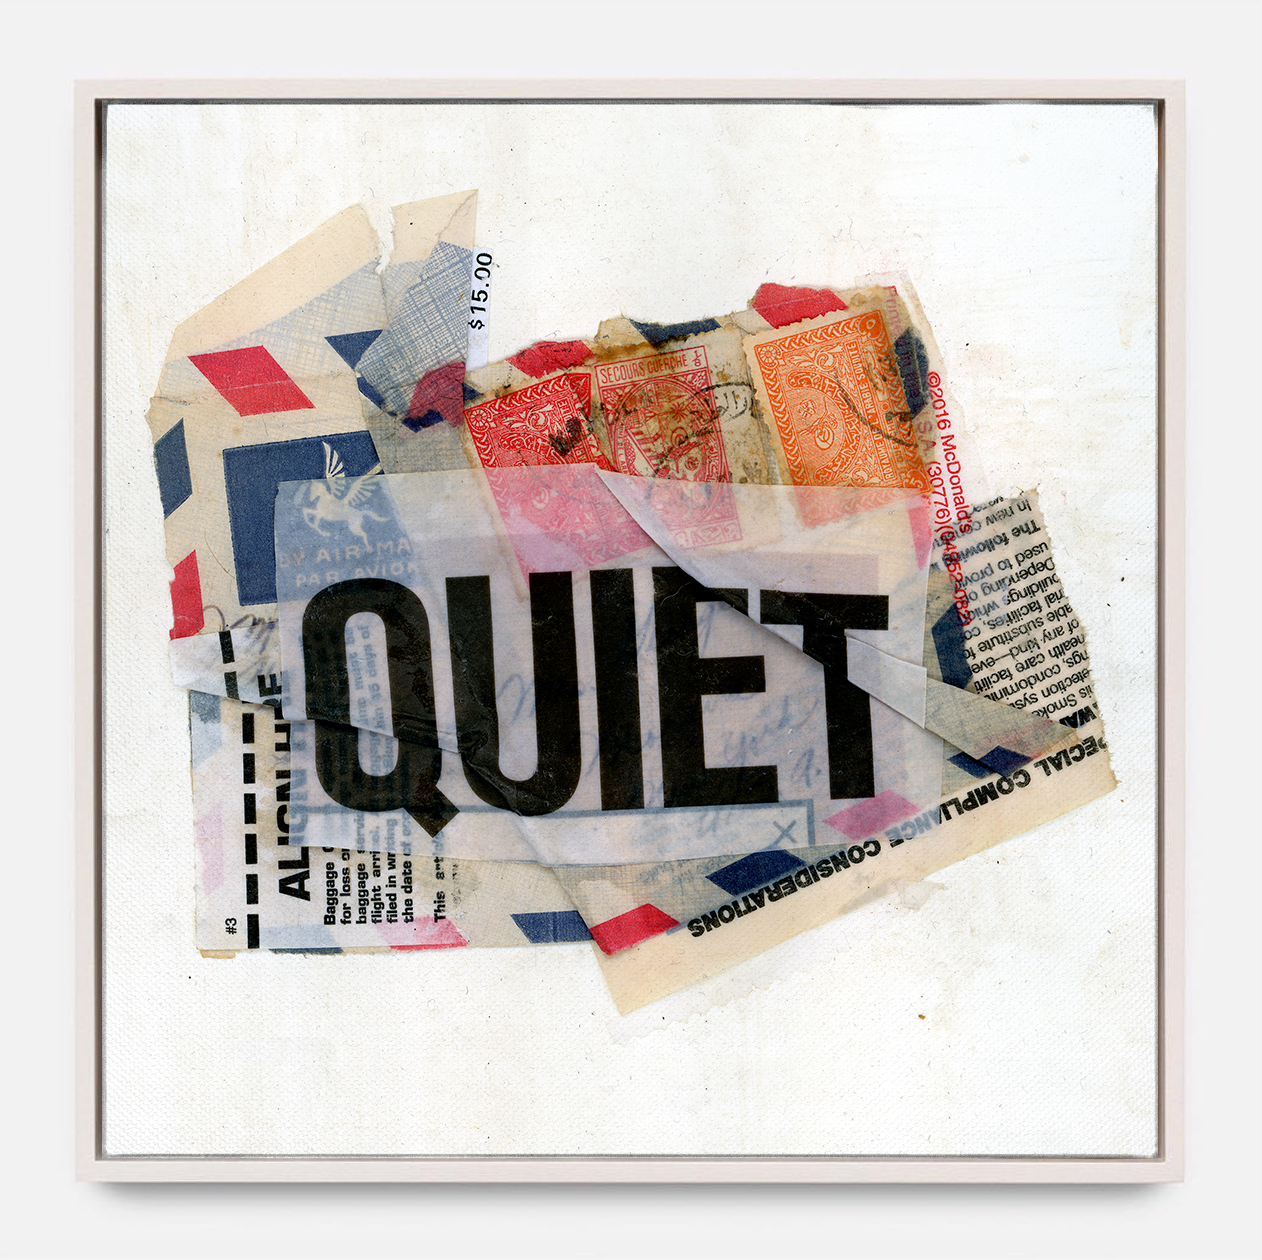 QUIET  (2018) Mixed Media on Wood Panel One of a Kind Hand Finish 36 x 36 inches Edition of 3 |  *SOLD  $ 1,700.00